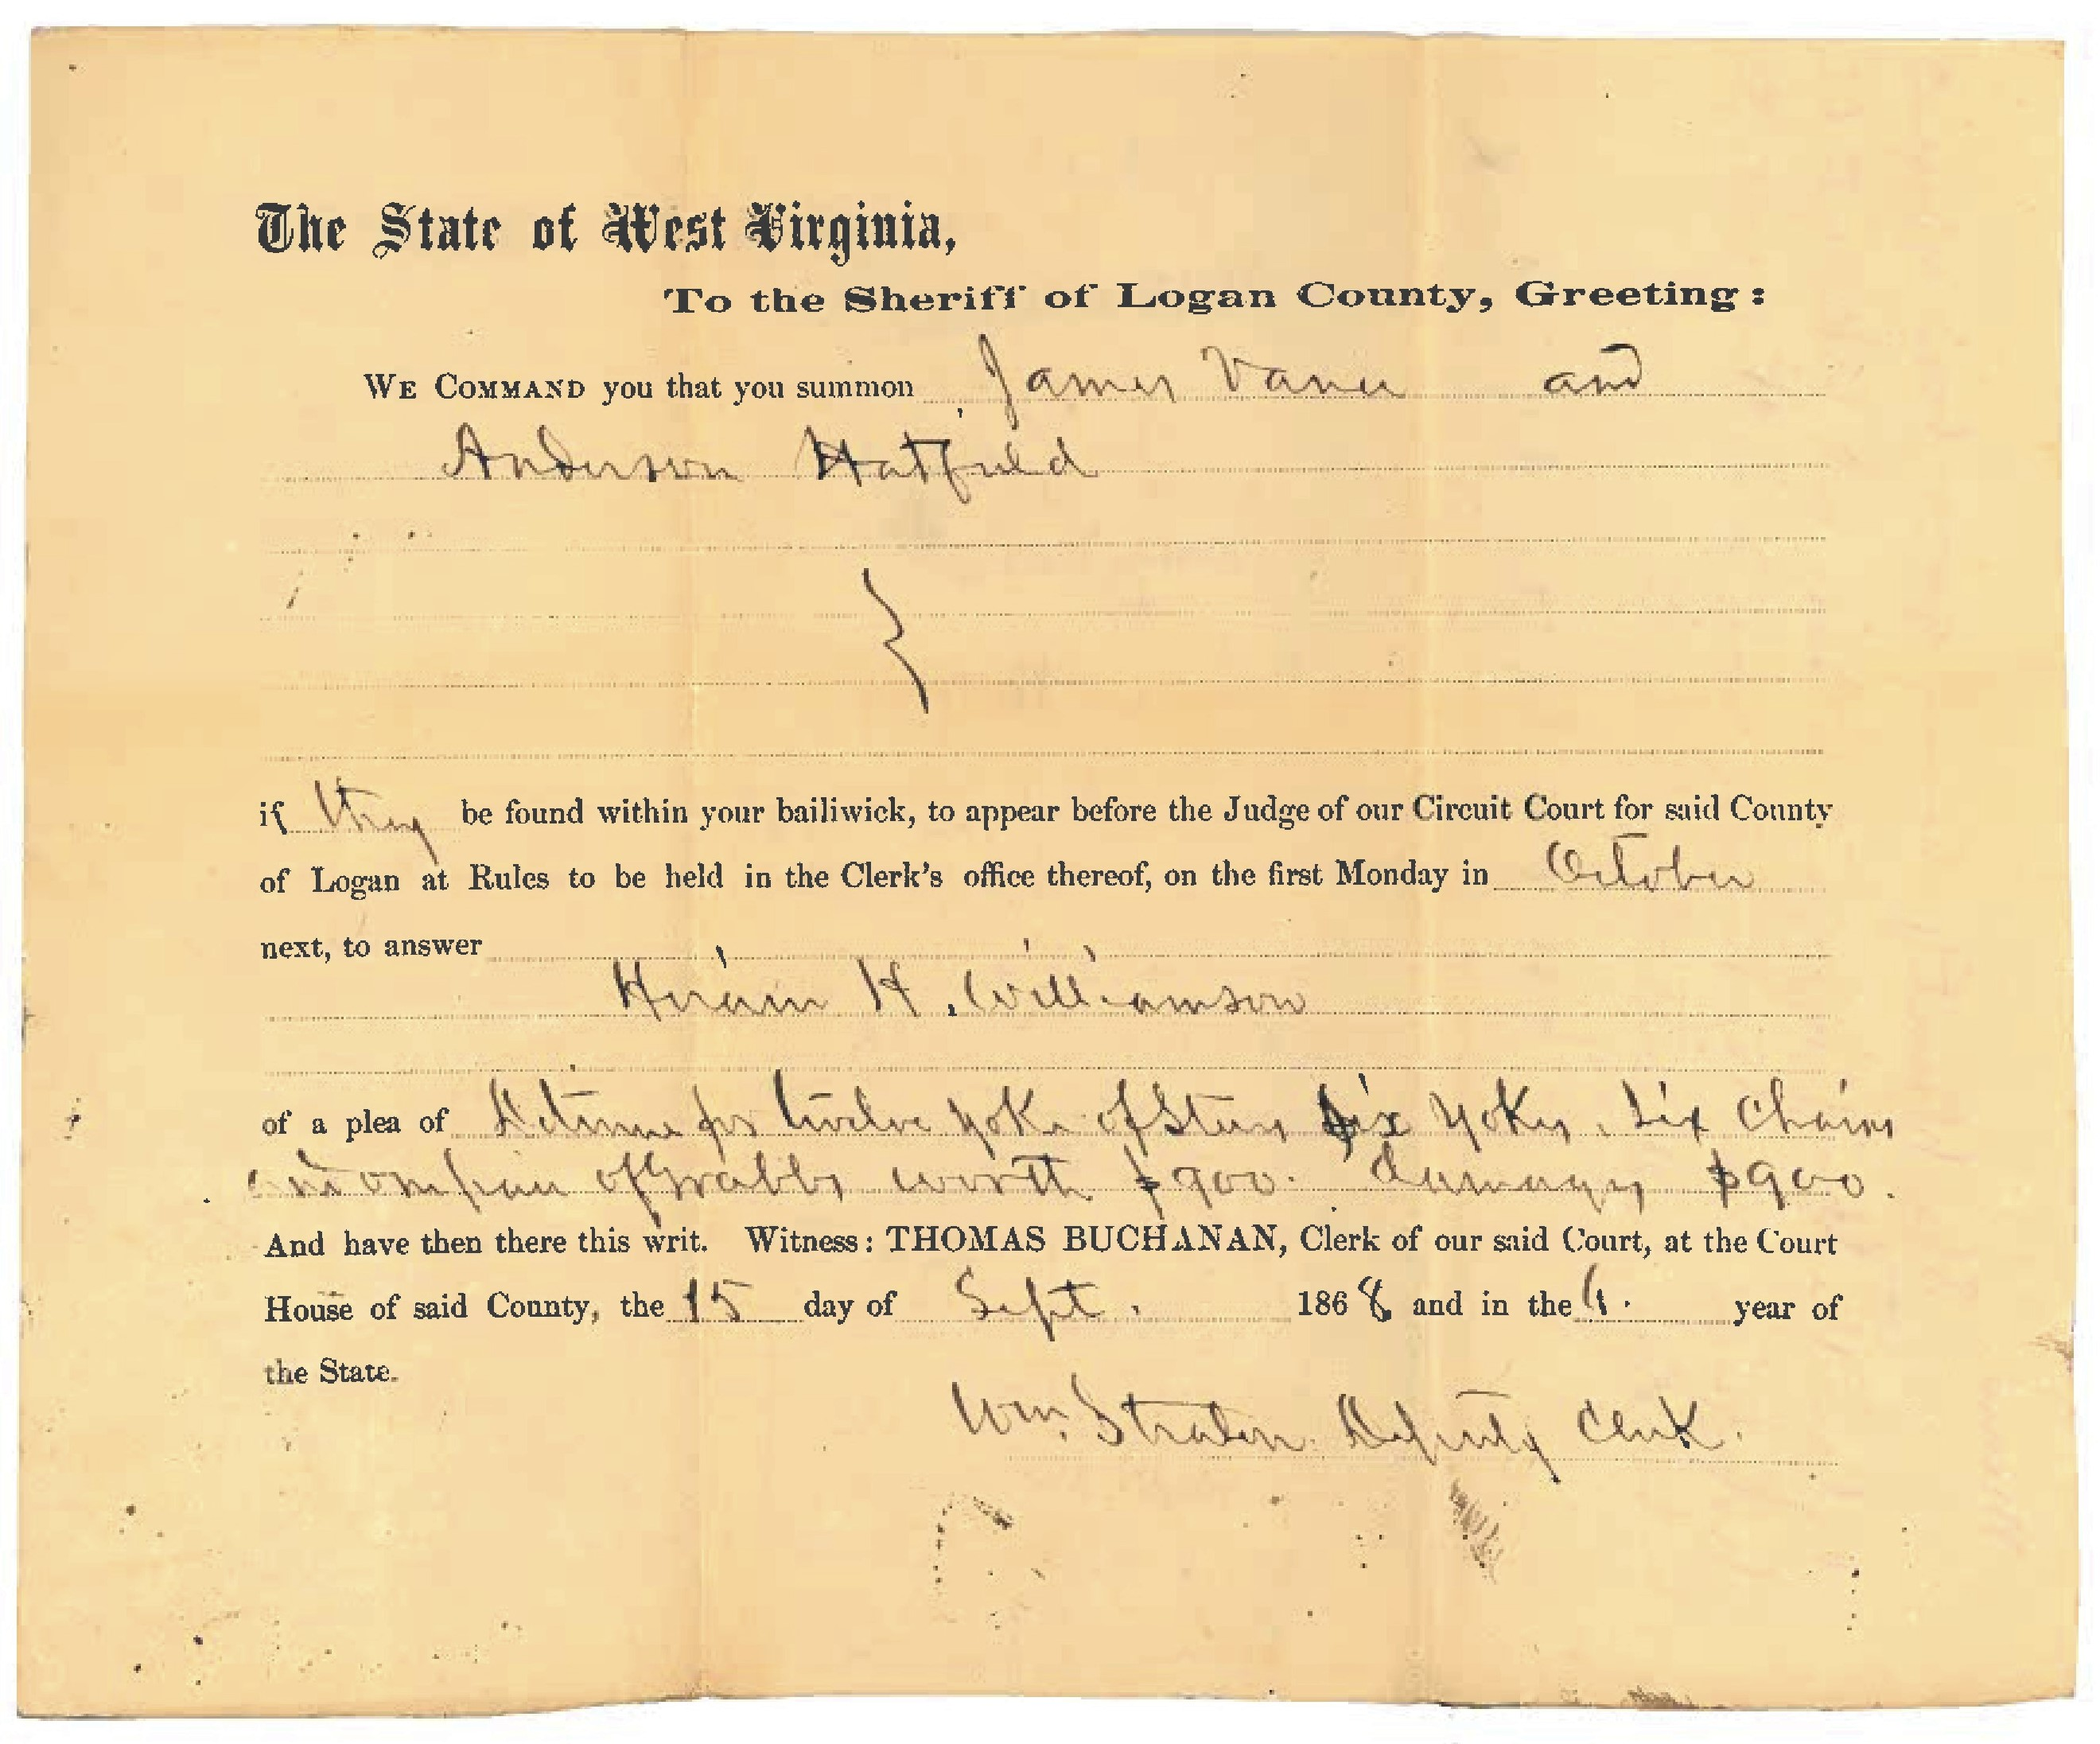 Anderson Hatfield and James Vance Document 1868 3